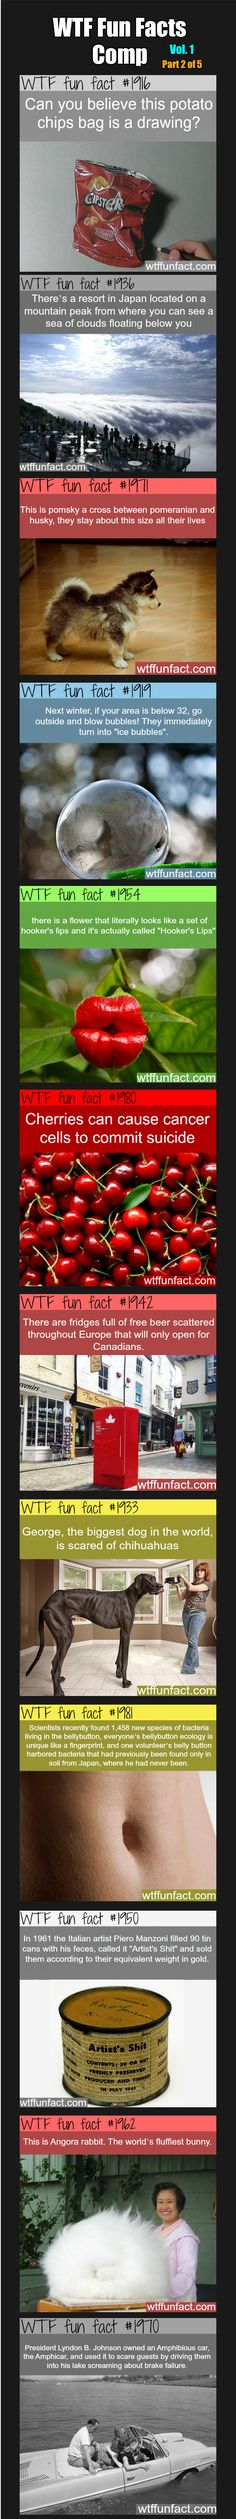 WTF Fun Facts Comp Vol. 1 Part 2